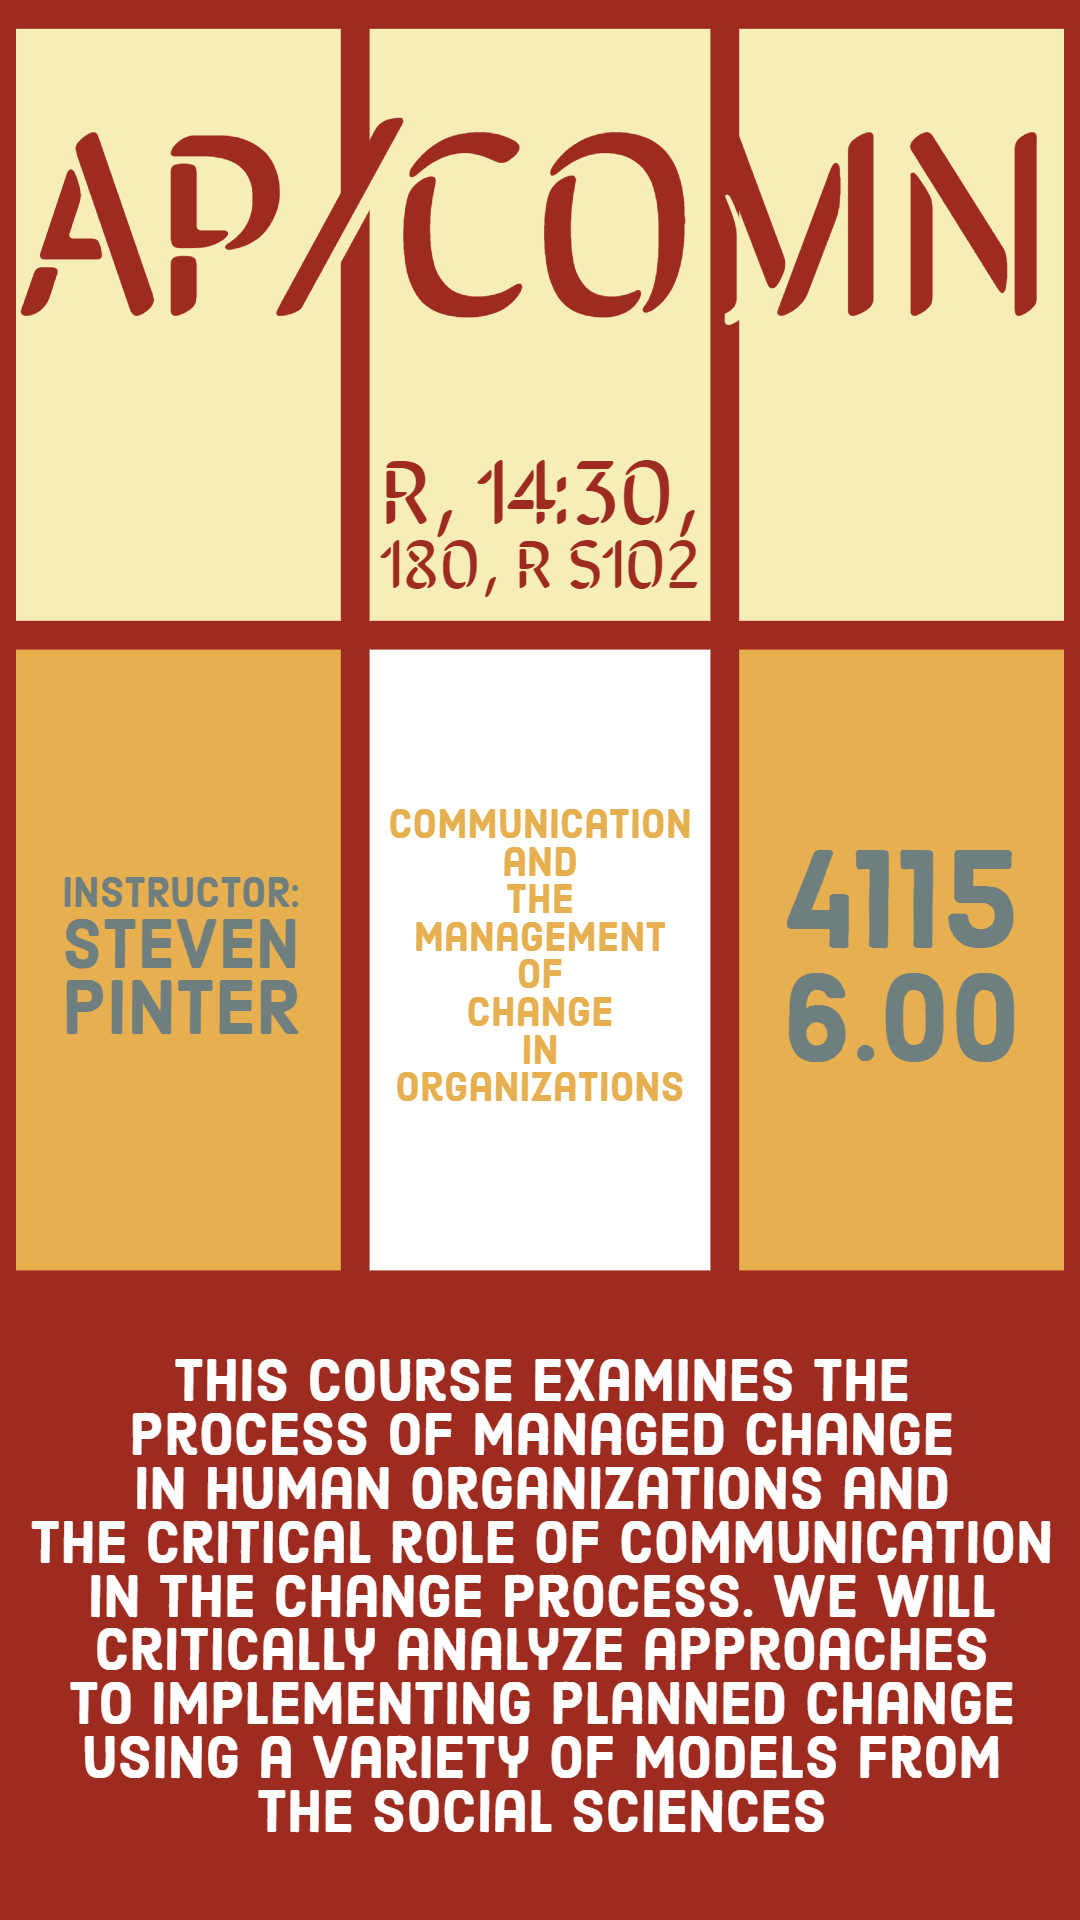 AP/COMN 4115 6.0 A: Comm and the Management of Change Session: Fall 2019Term: YFormat: SEMR Instructor: Steven Pinter